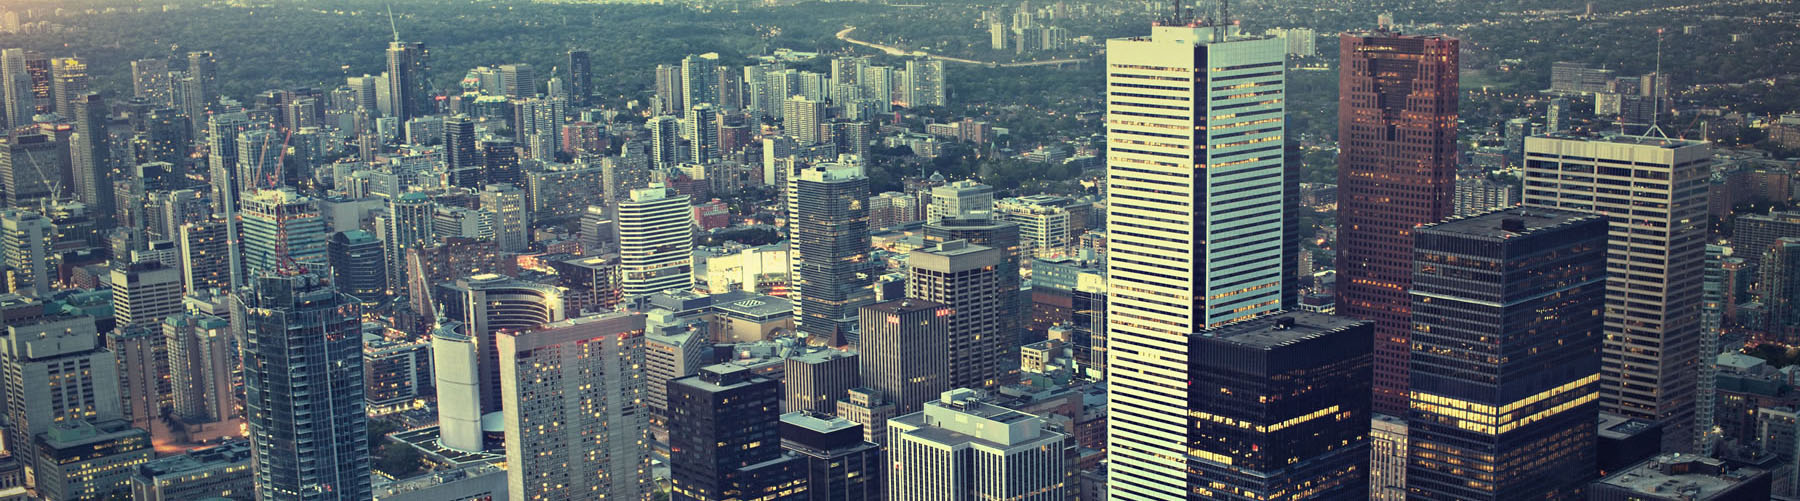 Business buildings in downtown Toronto